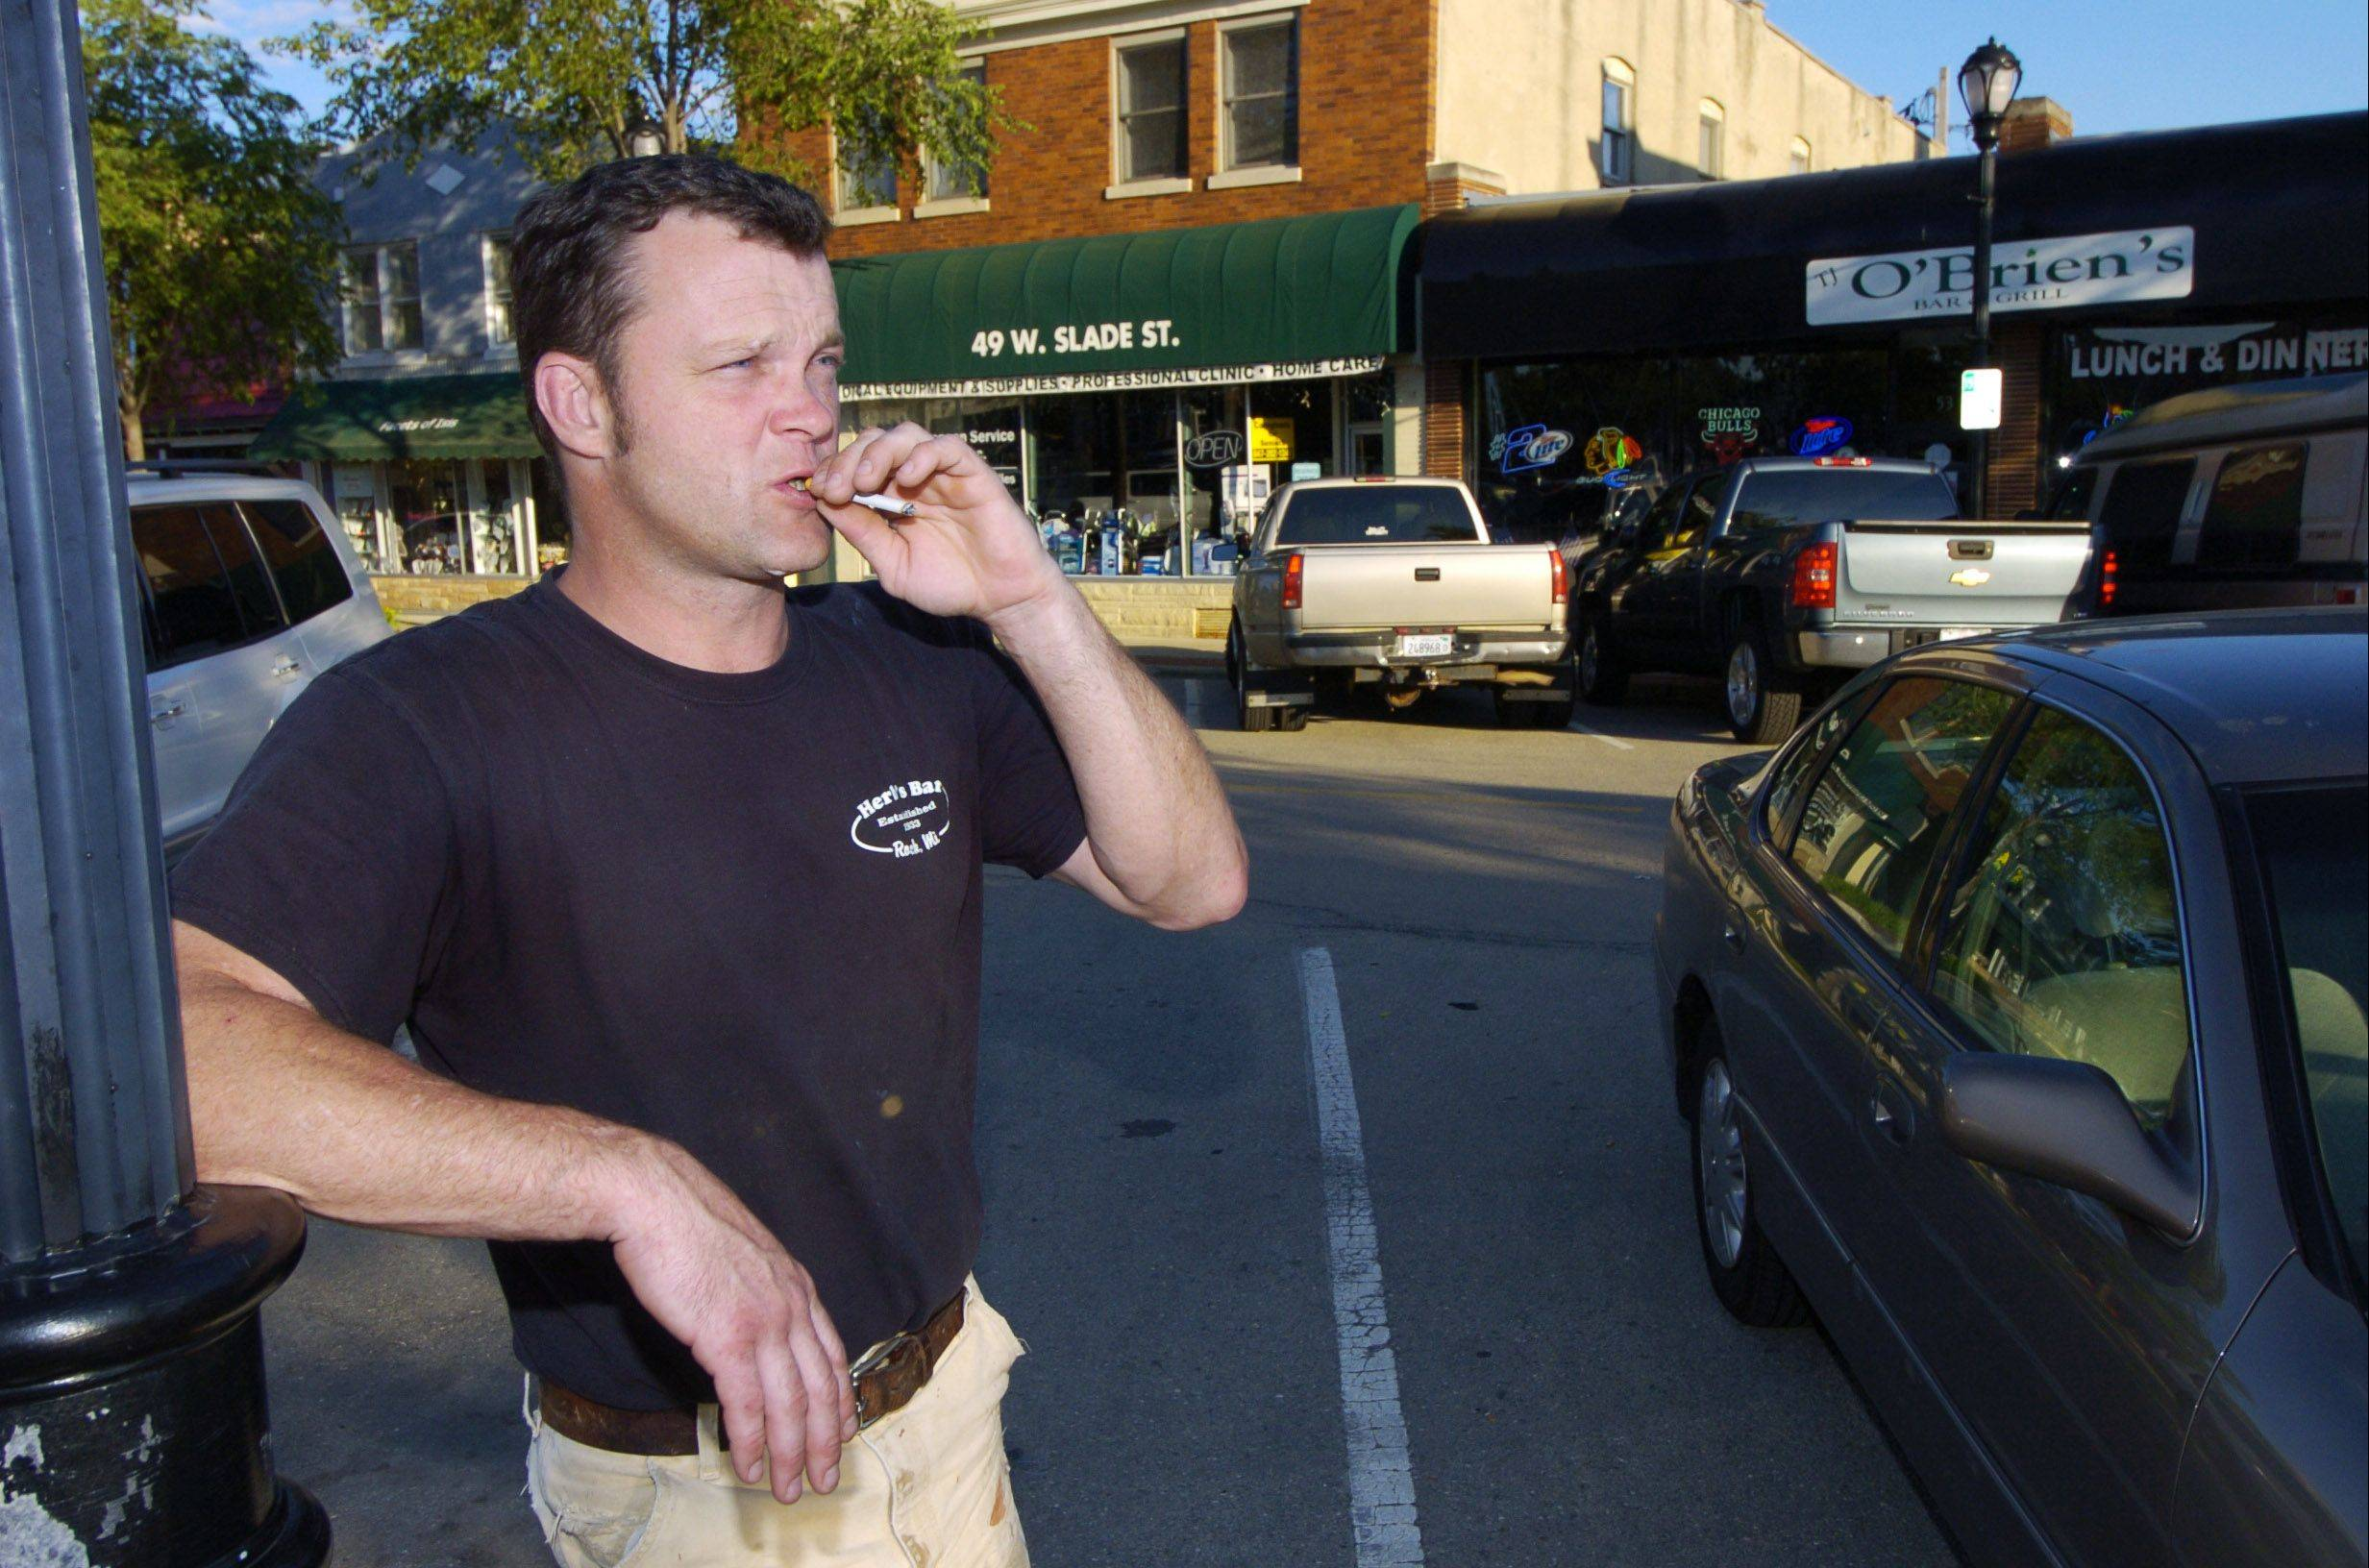 Michael Hane of Palatine smokes a cigarette while standing across the street from T.J. O'Brien's in Palatine.